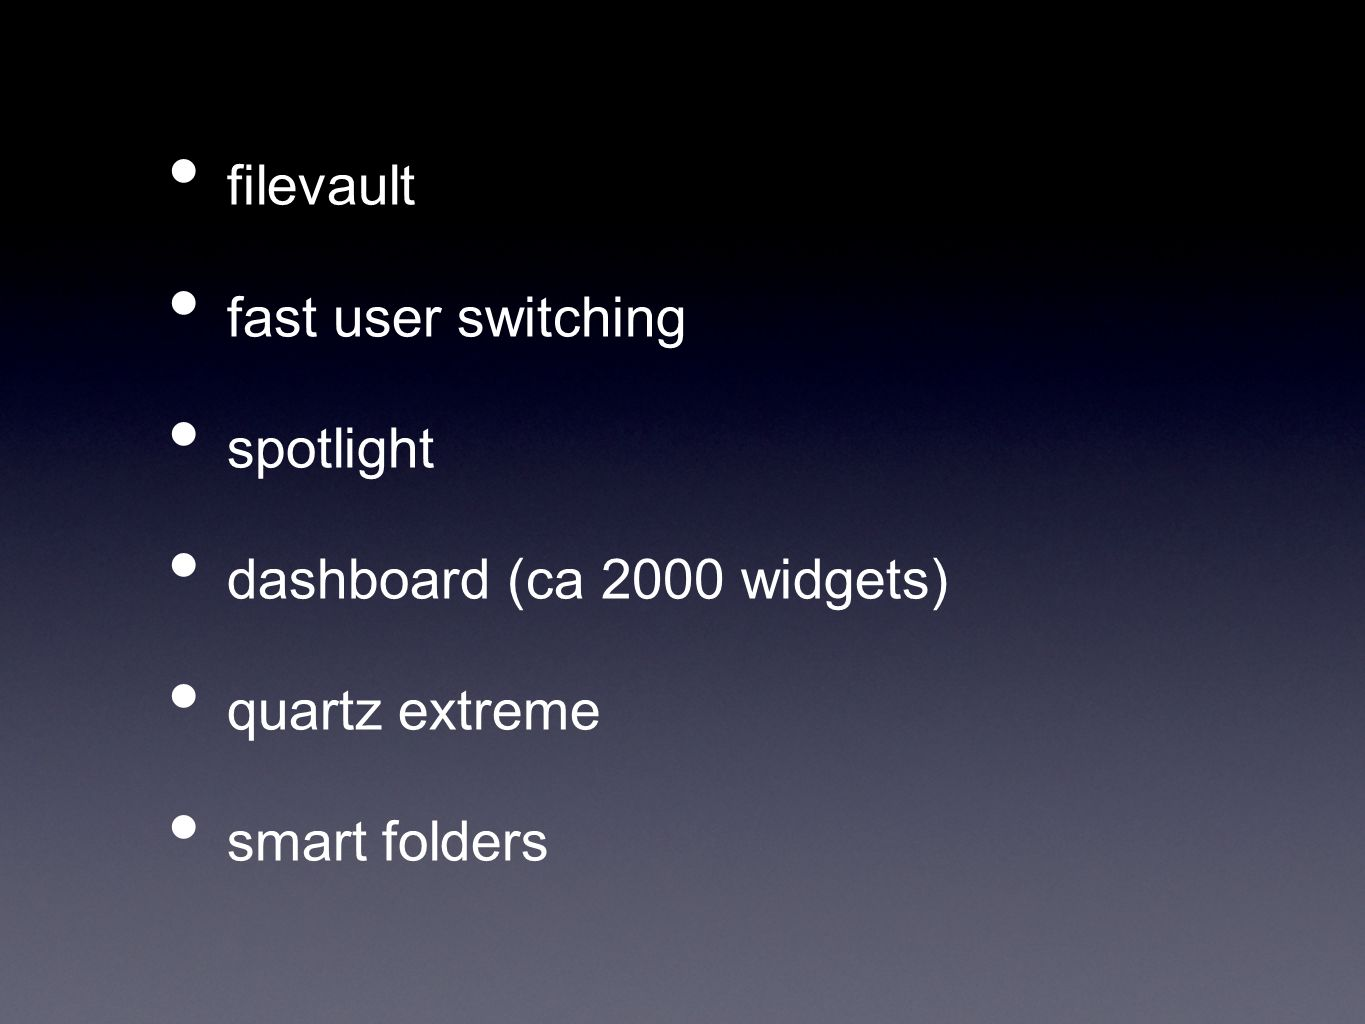 filevault fast user switching spotlight dashboard (ca 2000 widgets) quartz extreme smart folders